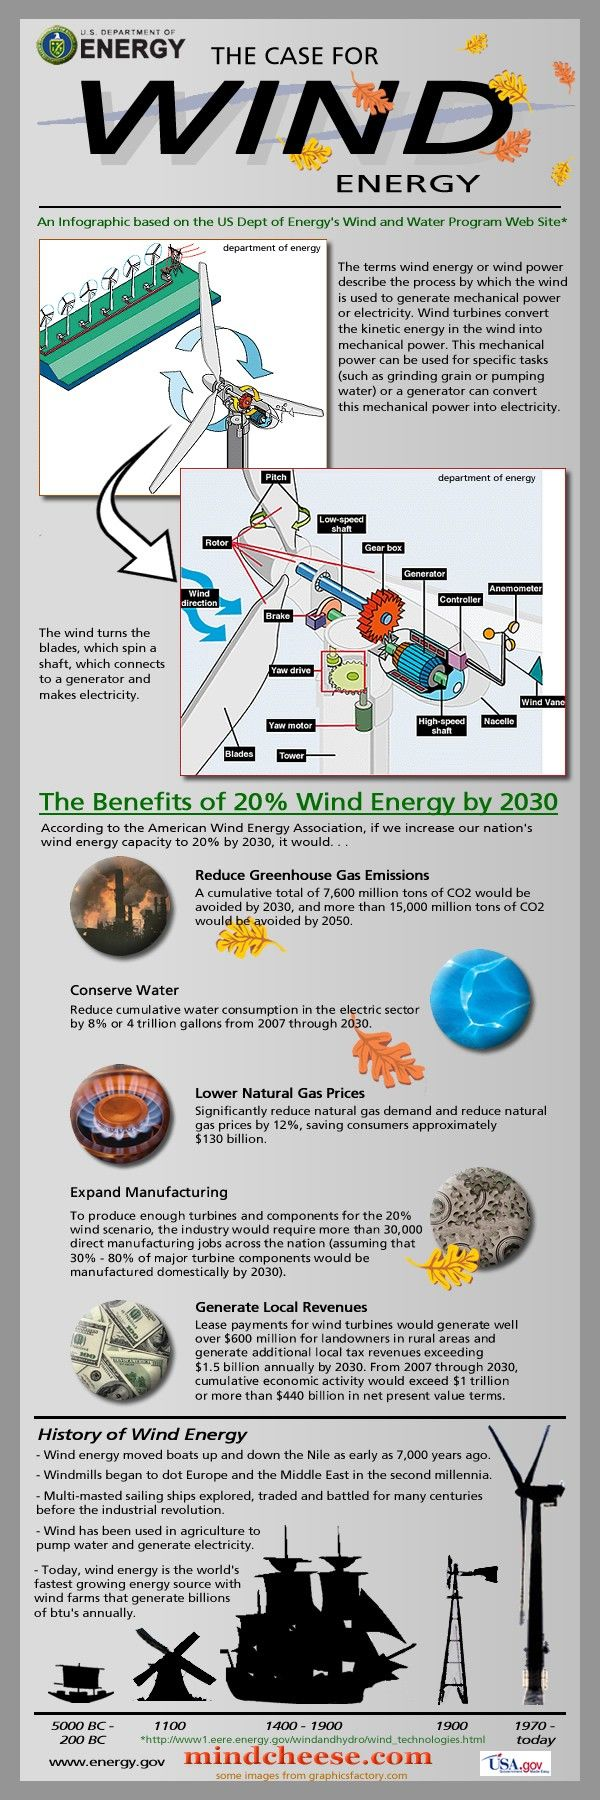 The Case for Wind Energy | U.S. Department of Energy